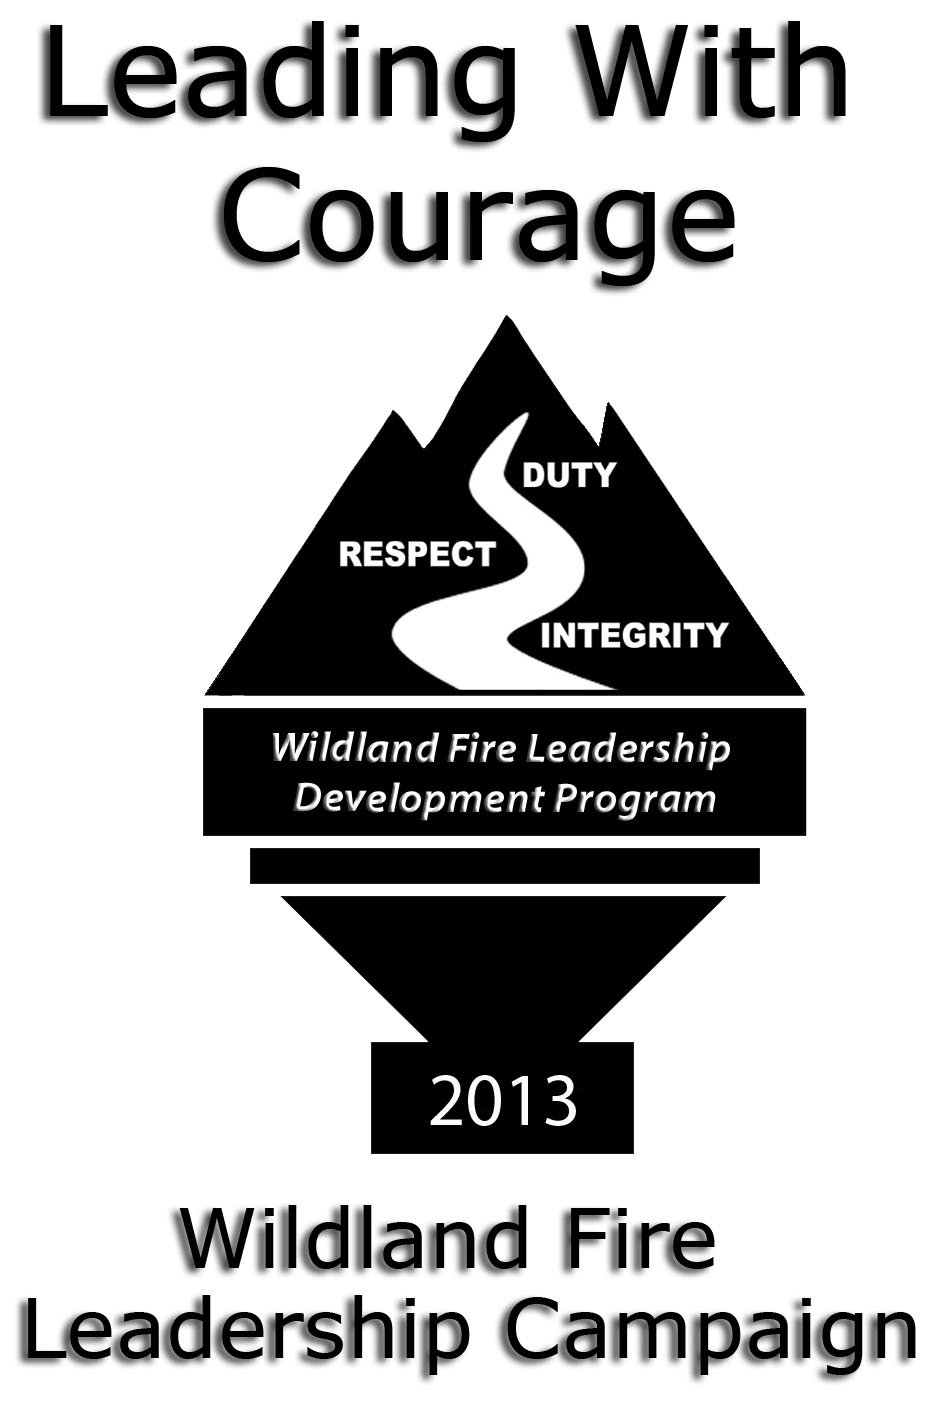 2013 Leading with Courage campaign logo